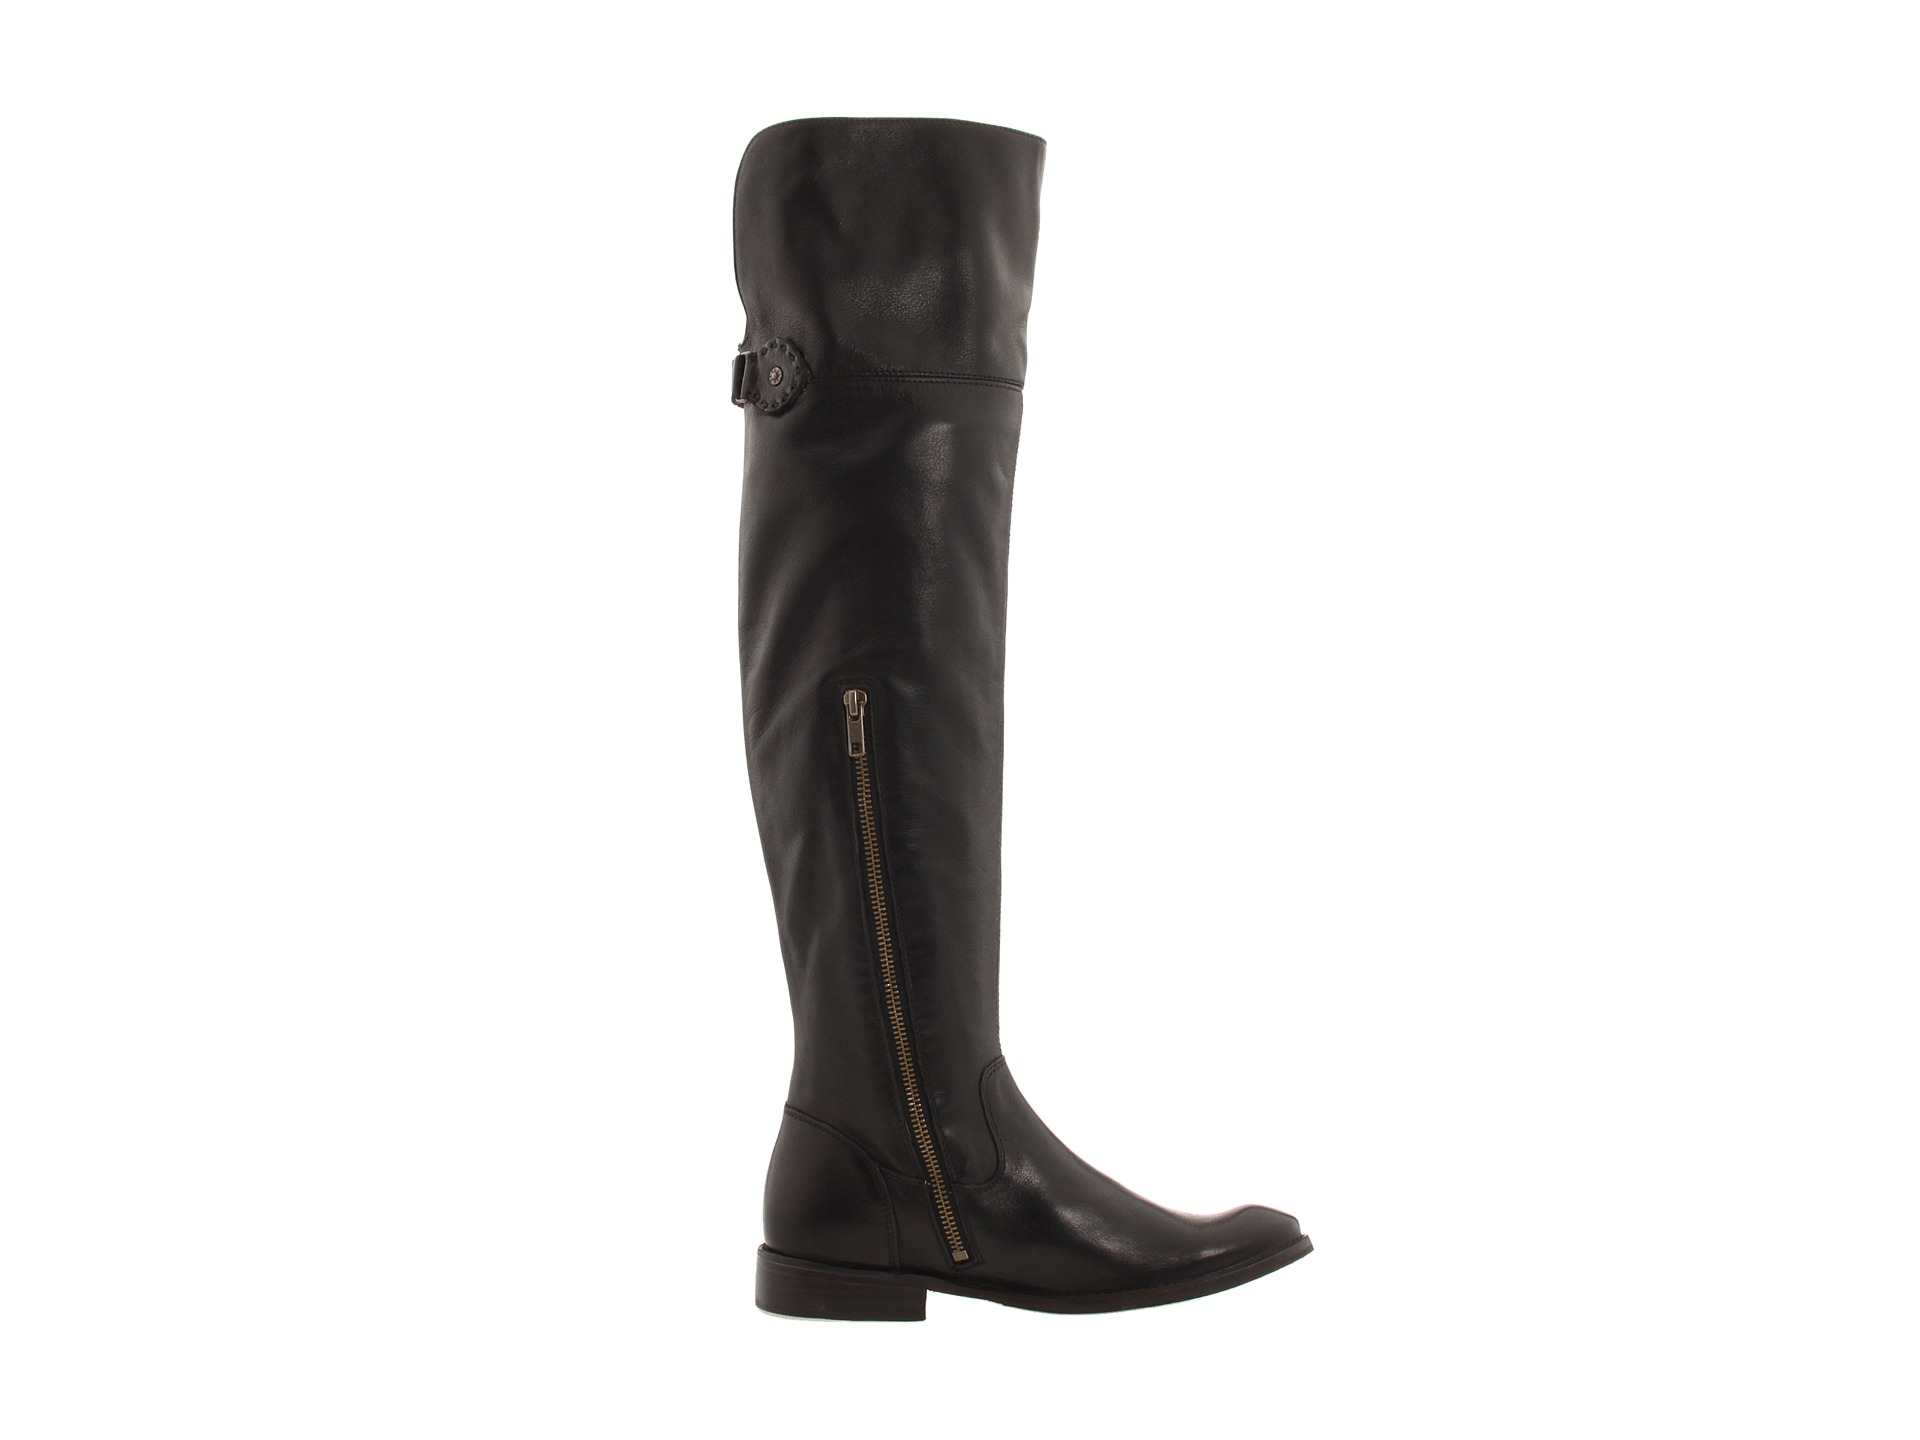 Frye Shirley Over-The-Knee Riding - Zappos.com Free Shipping BOTH Ways